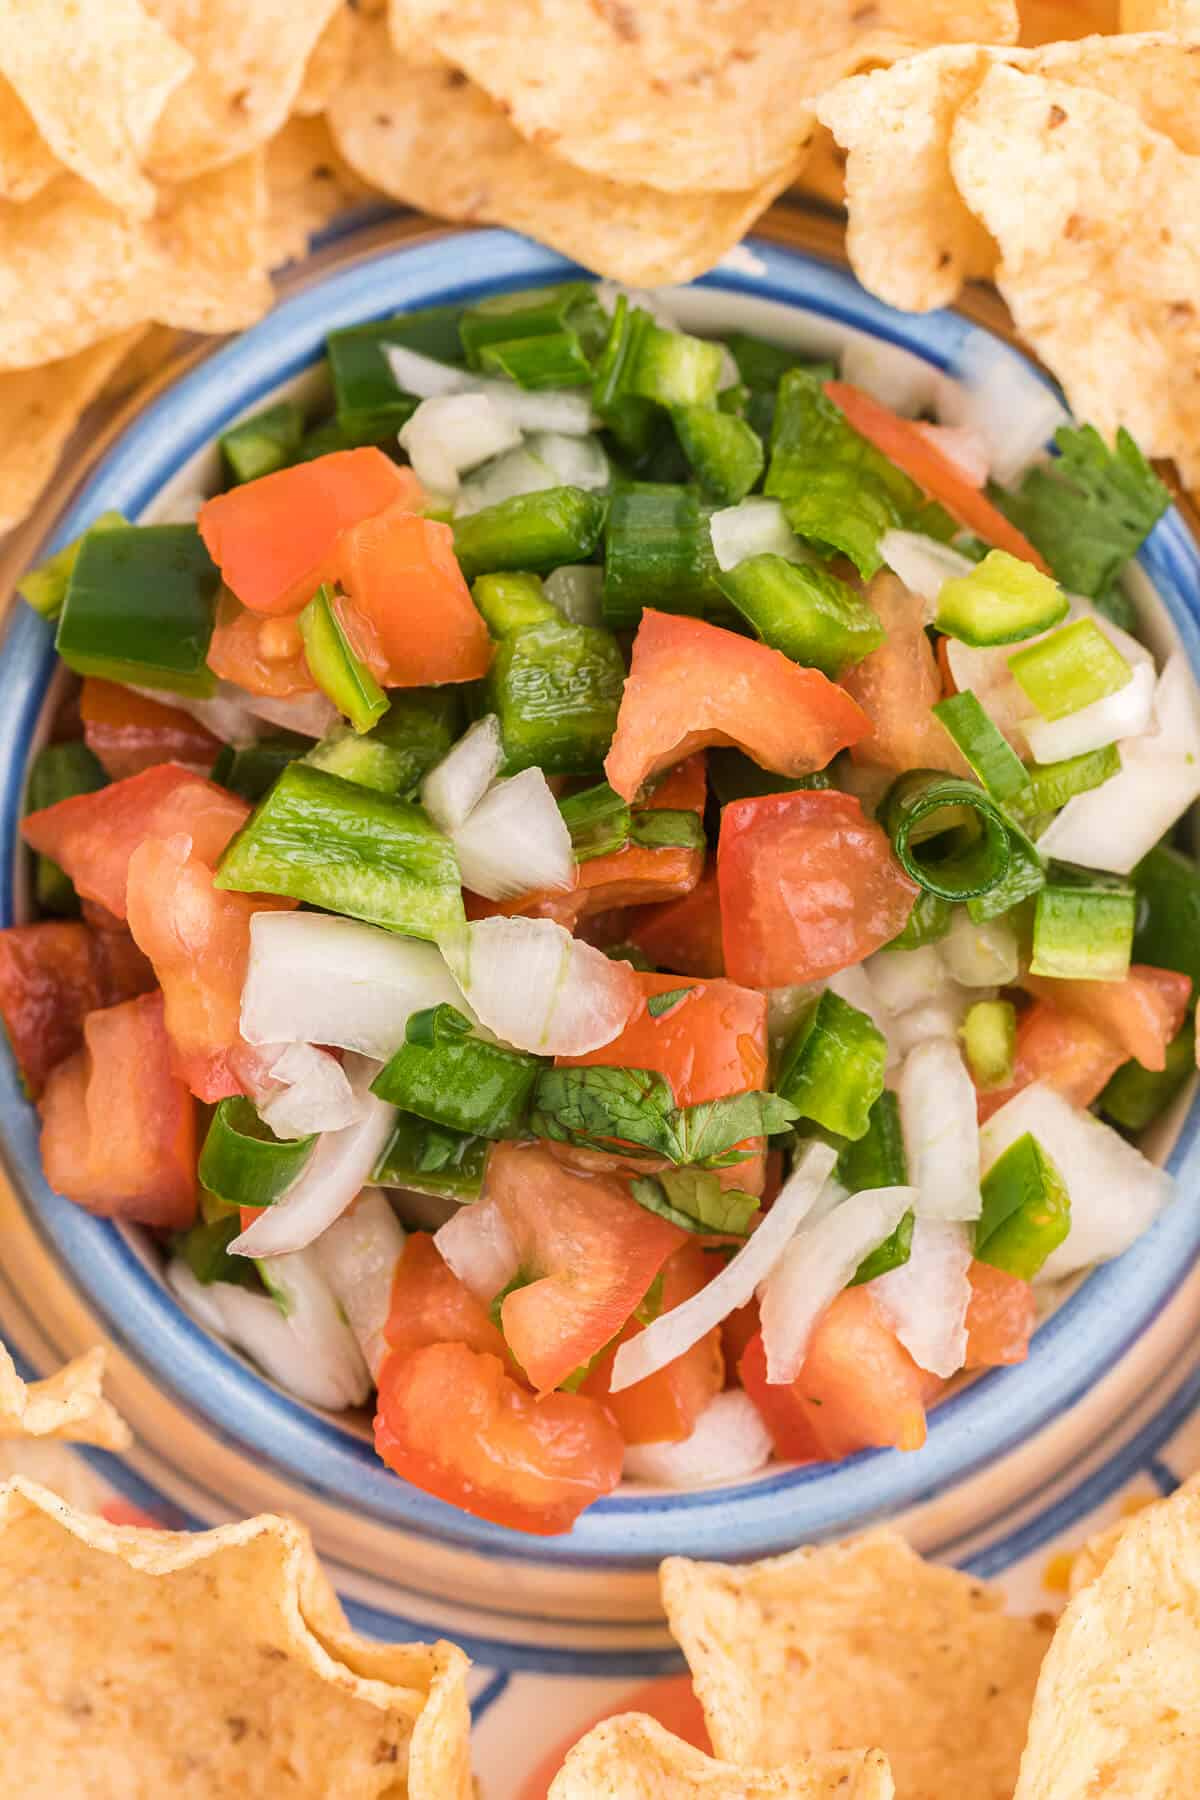 Pico de Gallo - The perfect Taco Tuesday topping! A super simple salsa recipe with tomatoes, peppers, onions, cilantro, and lime juice.